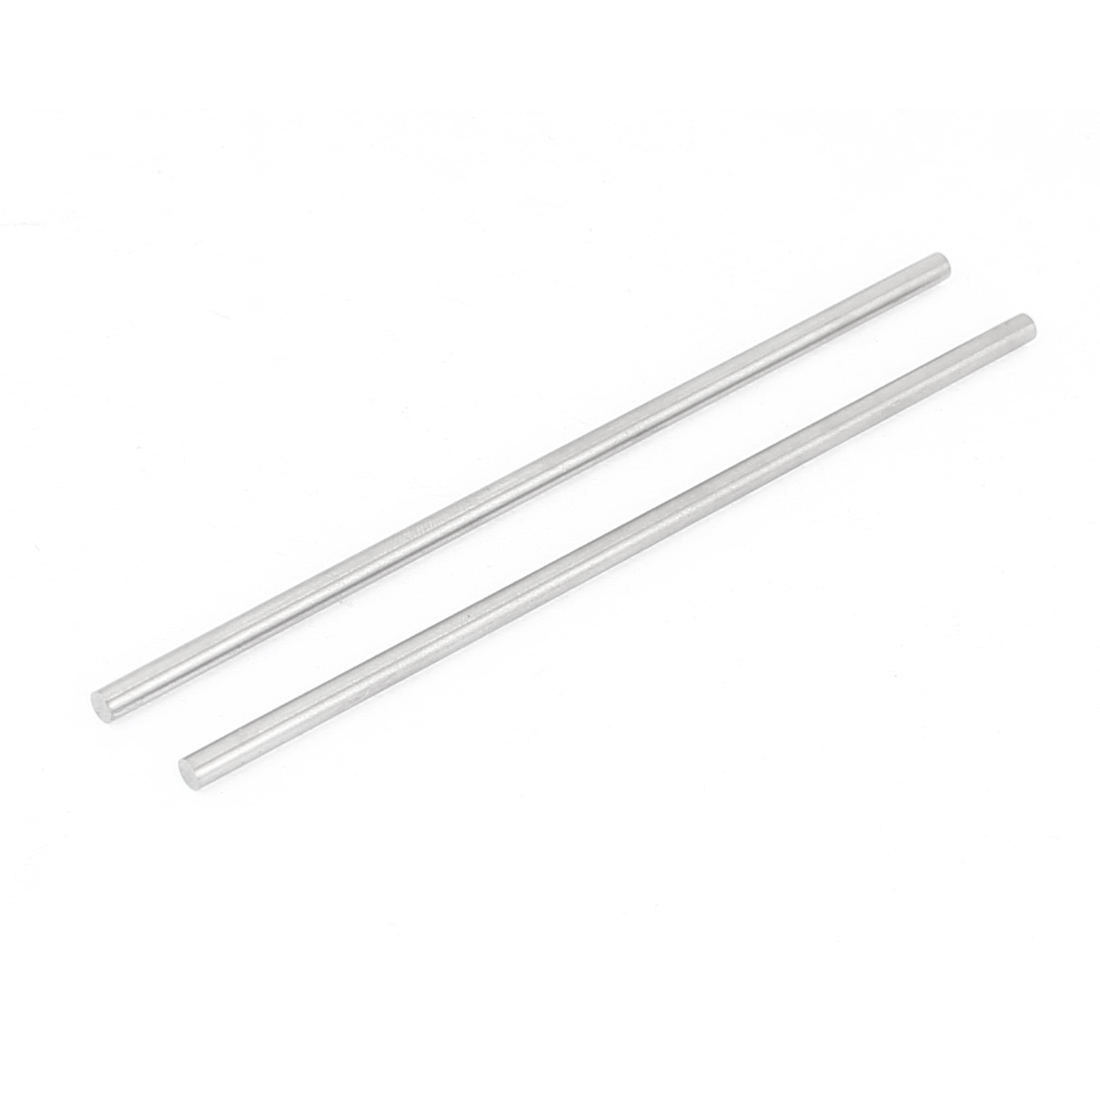 3mm x 100mm Graving Tool Round Turning Lathe Bars Silver Tone 2 Pcs